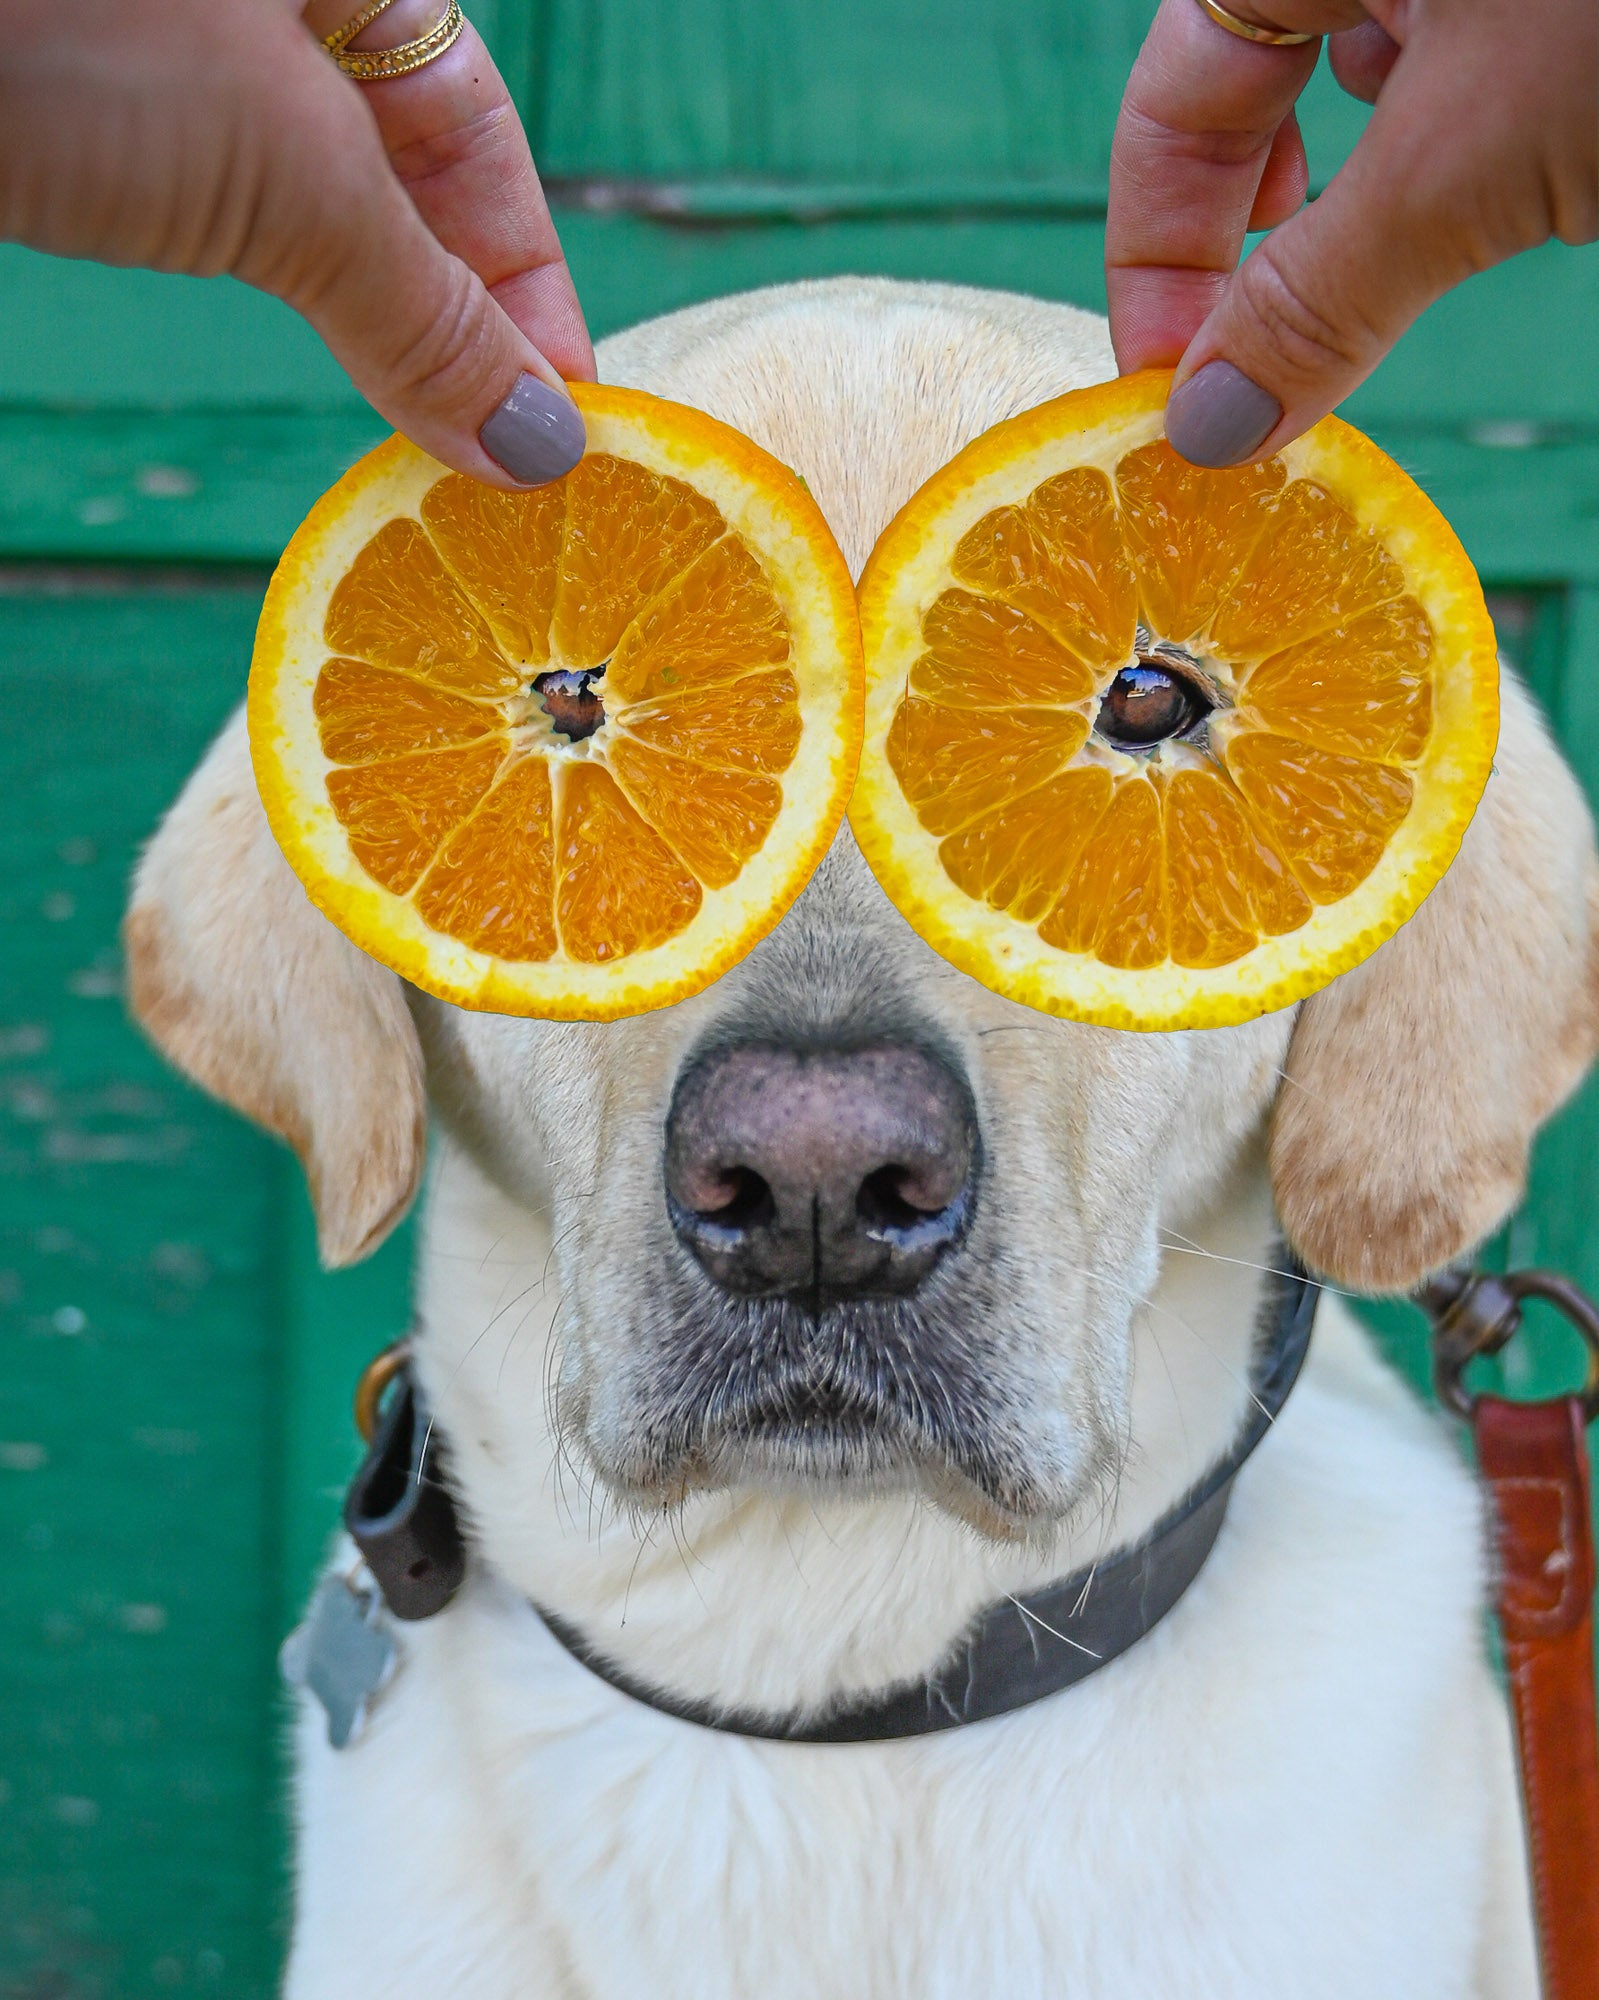 Dog with orange slices